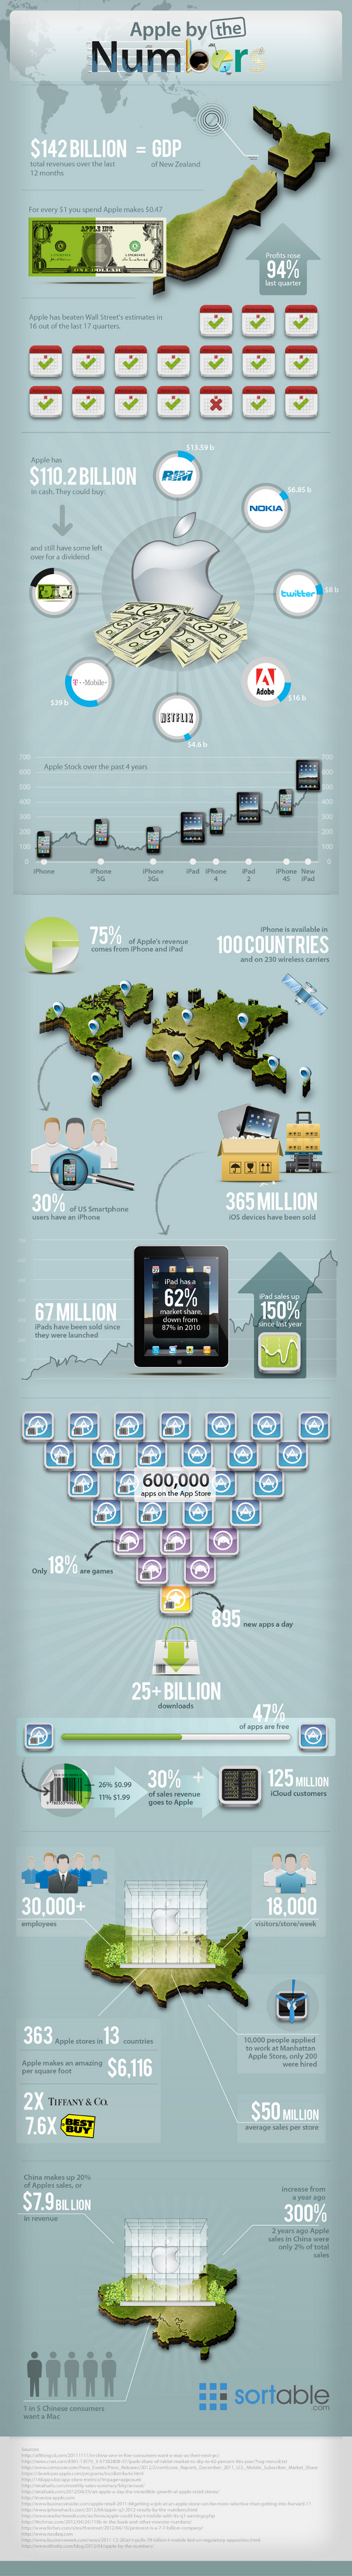 Apple-By-The-Numbers-infographic